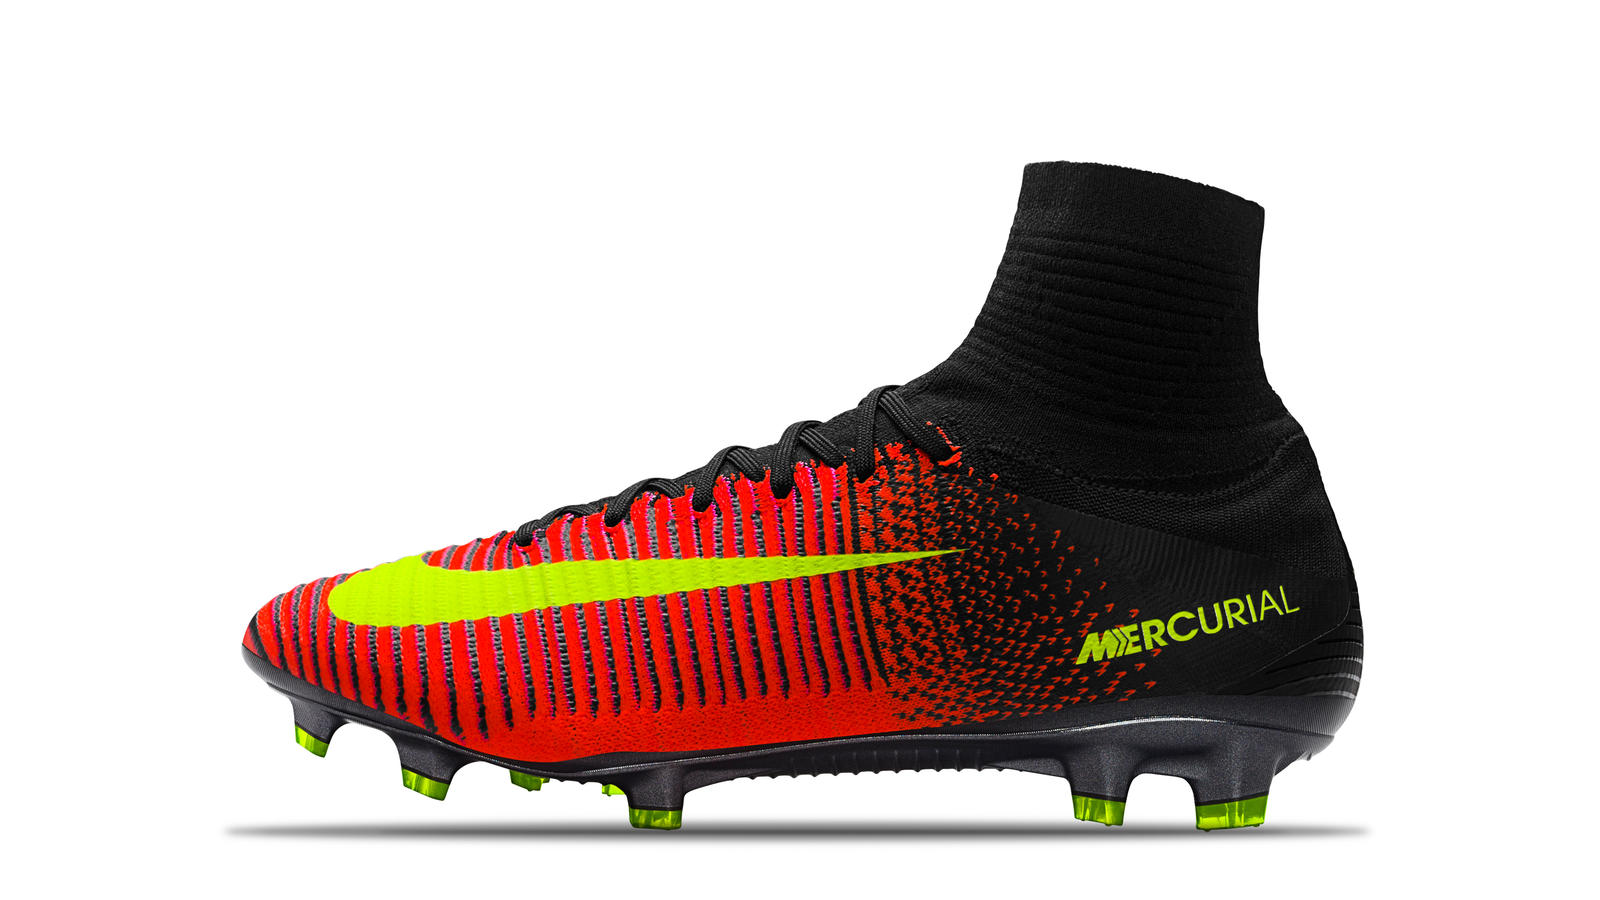 2016 Mercurial Superfly V Total Crimson Black Yellow